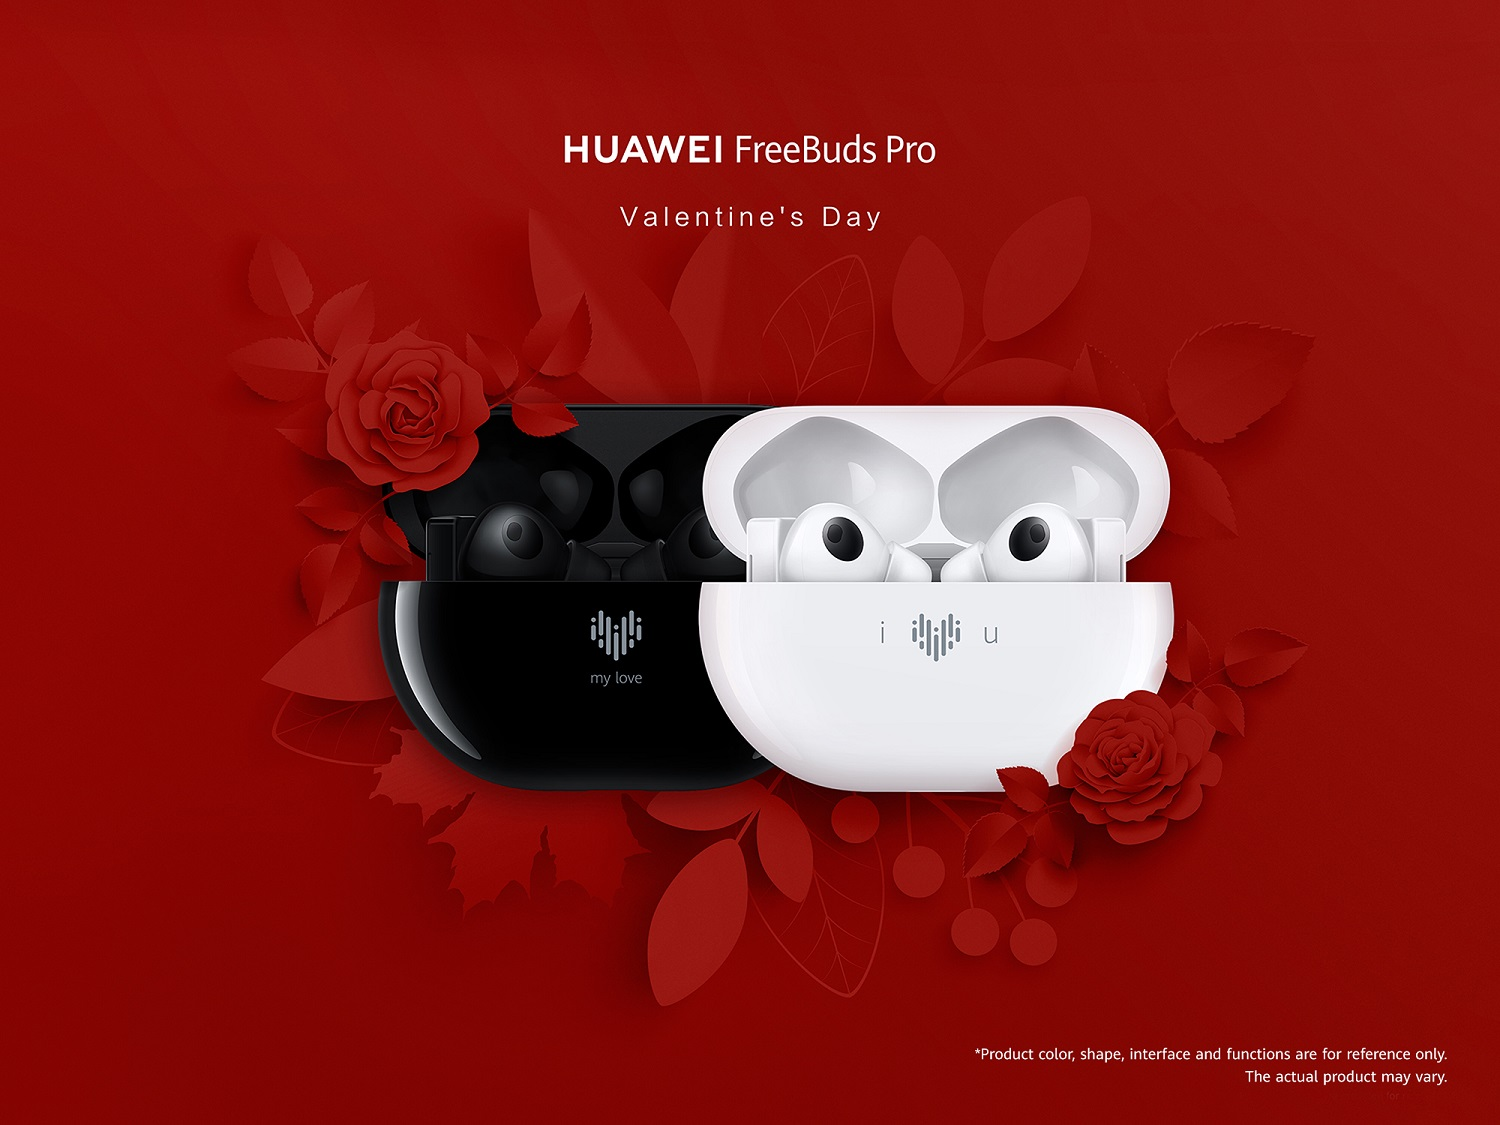 Gifting Just Got A Whole Lot Easier! Enjoy Free Engraving Service For The HUAWEI FreeBuds Pro